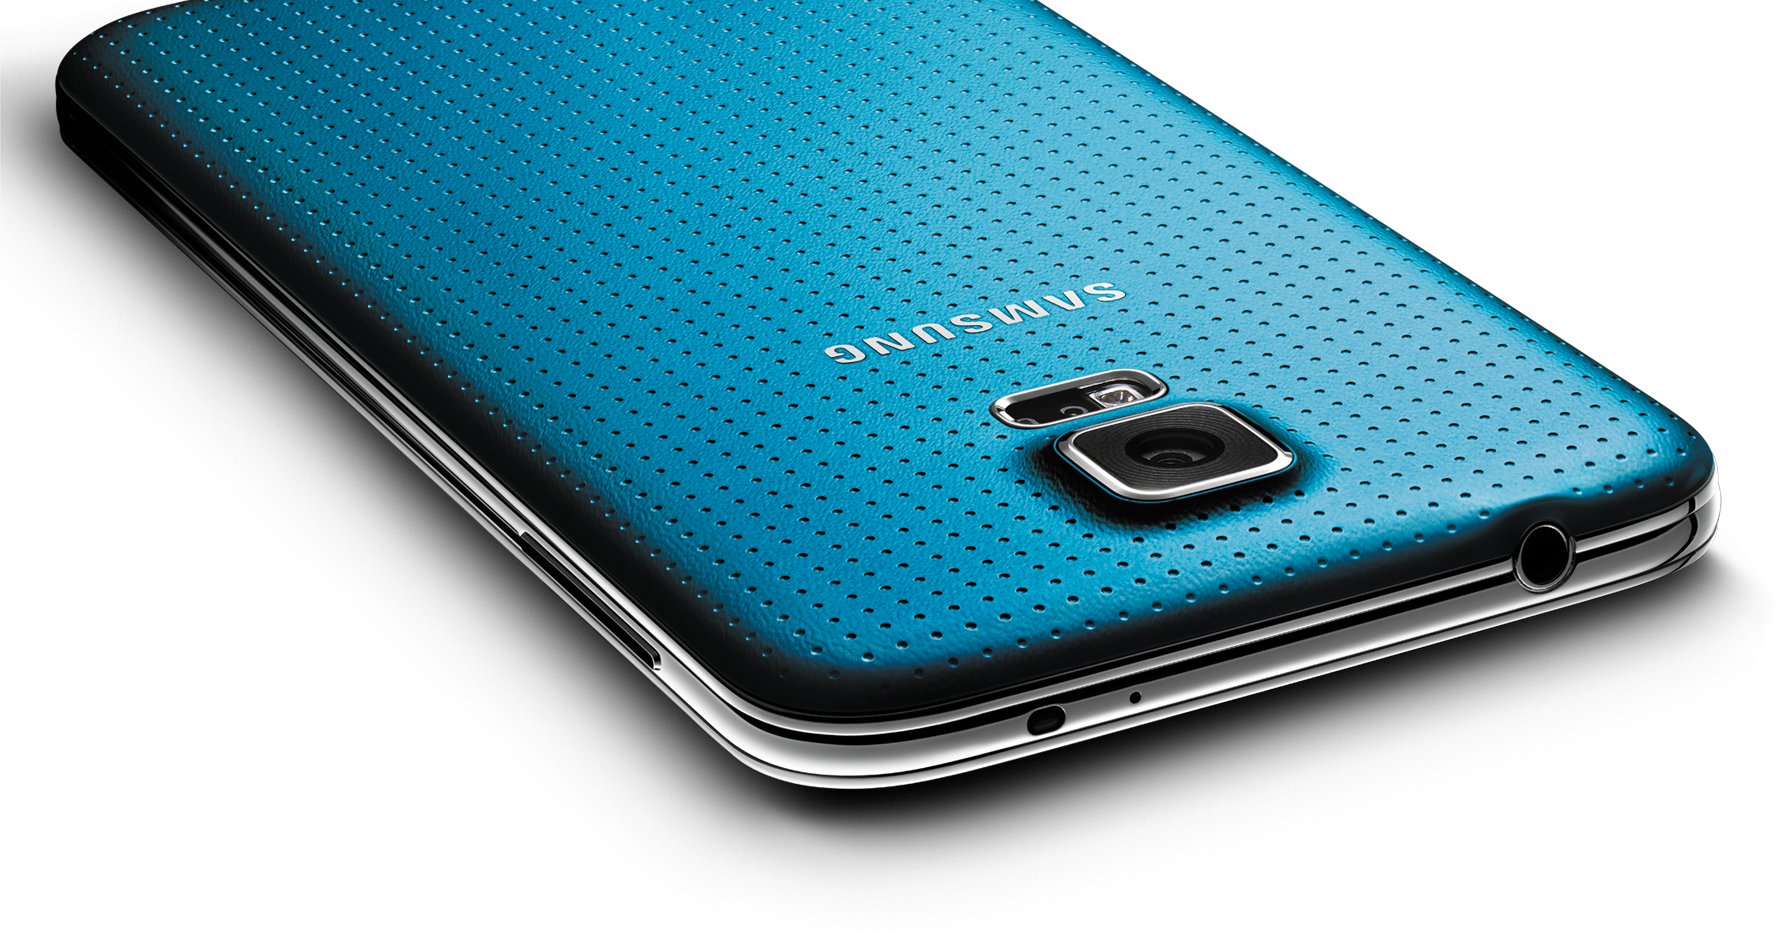 Pre-Rooted Samsung Galaxy S5 Custom ROM - Guide